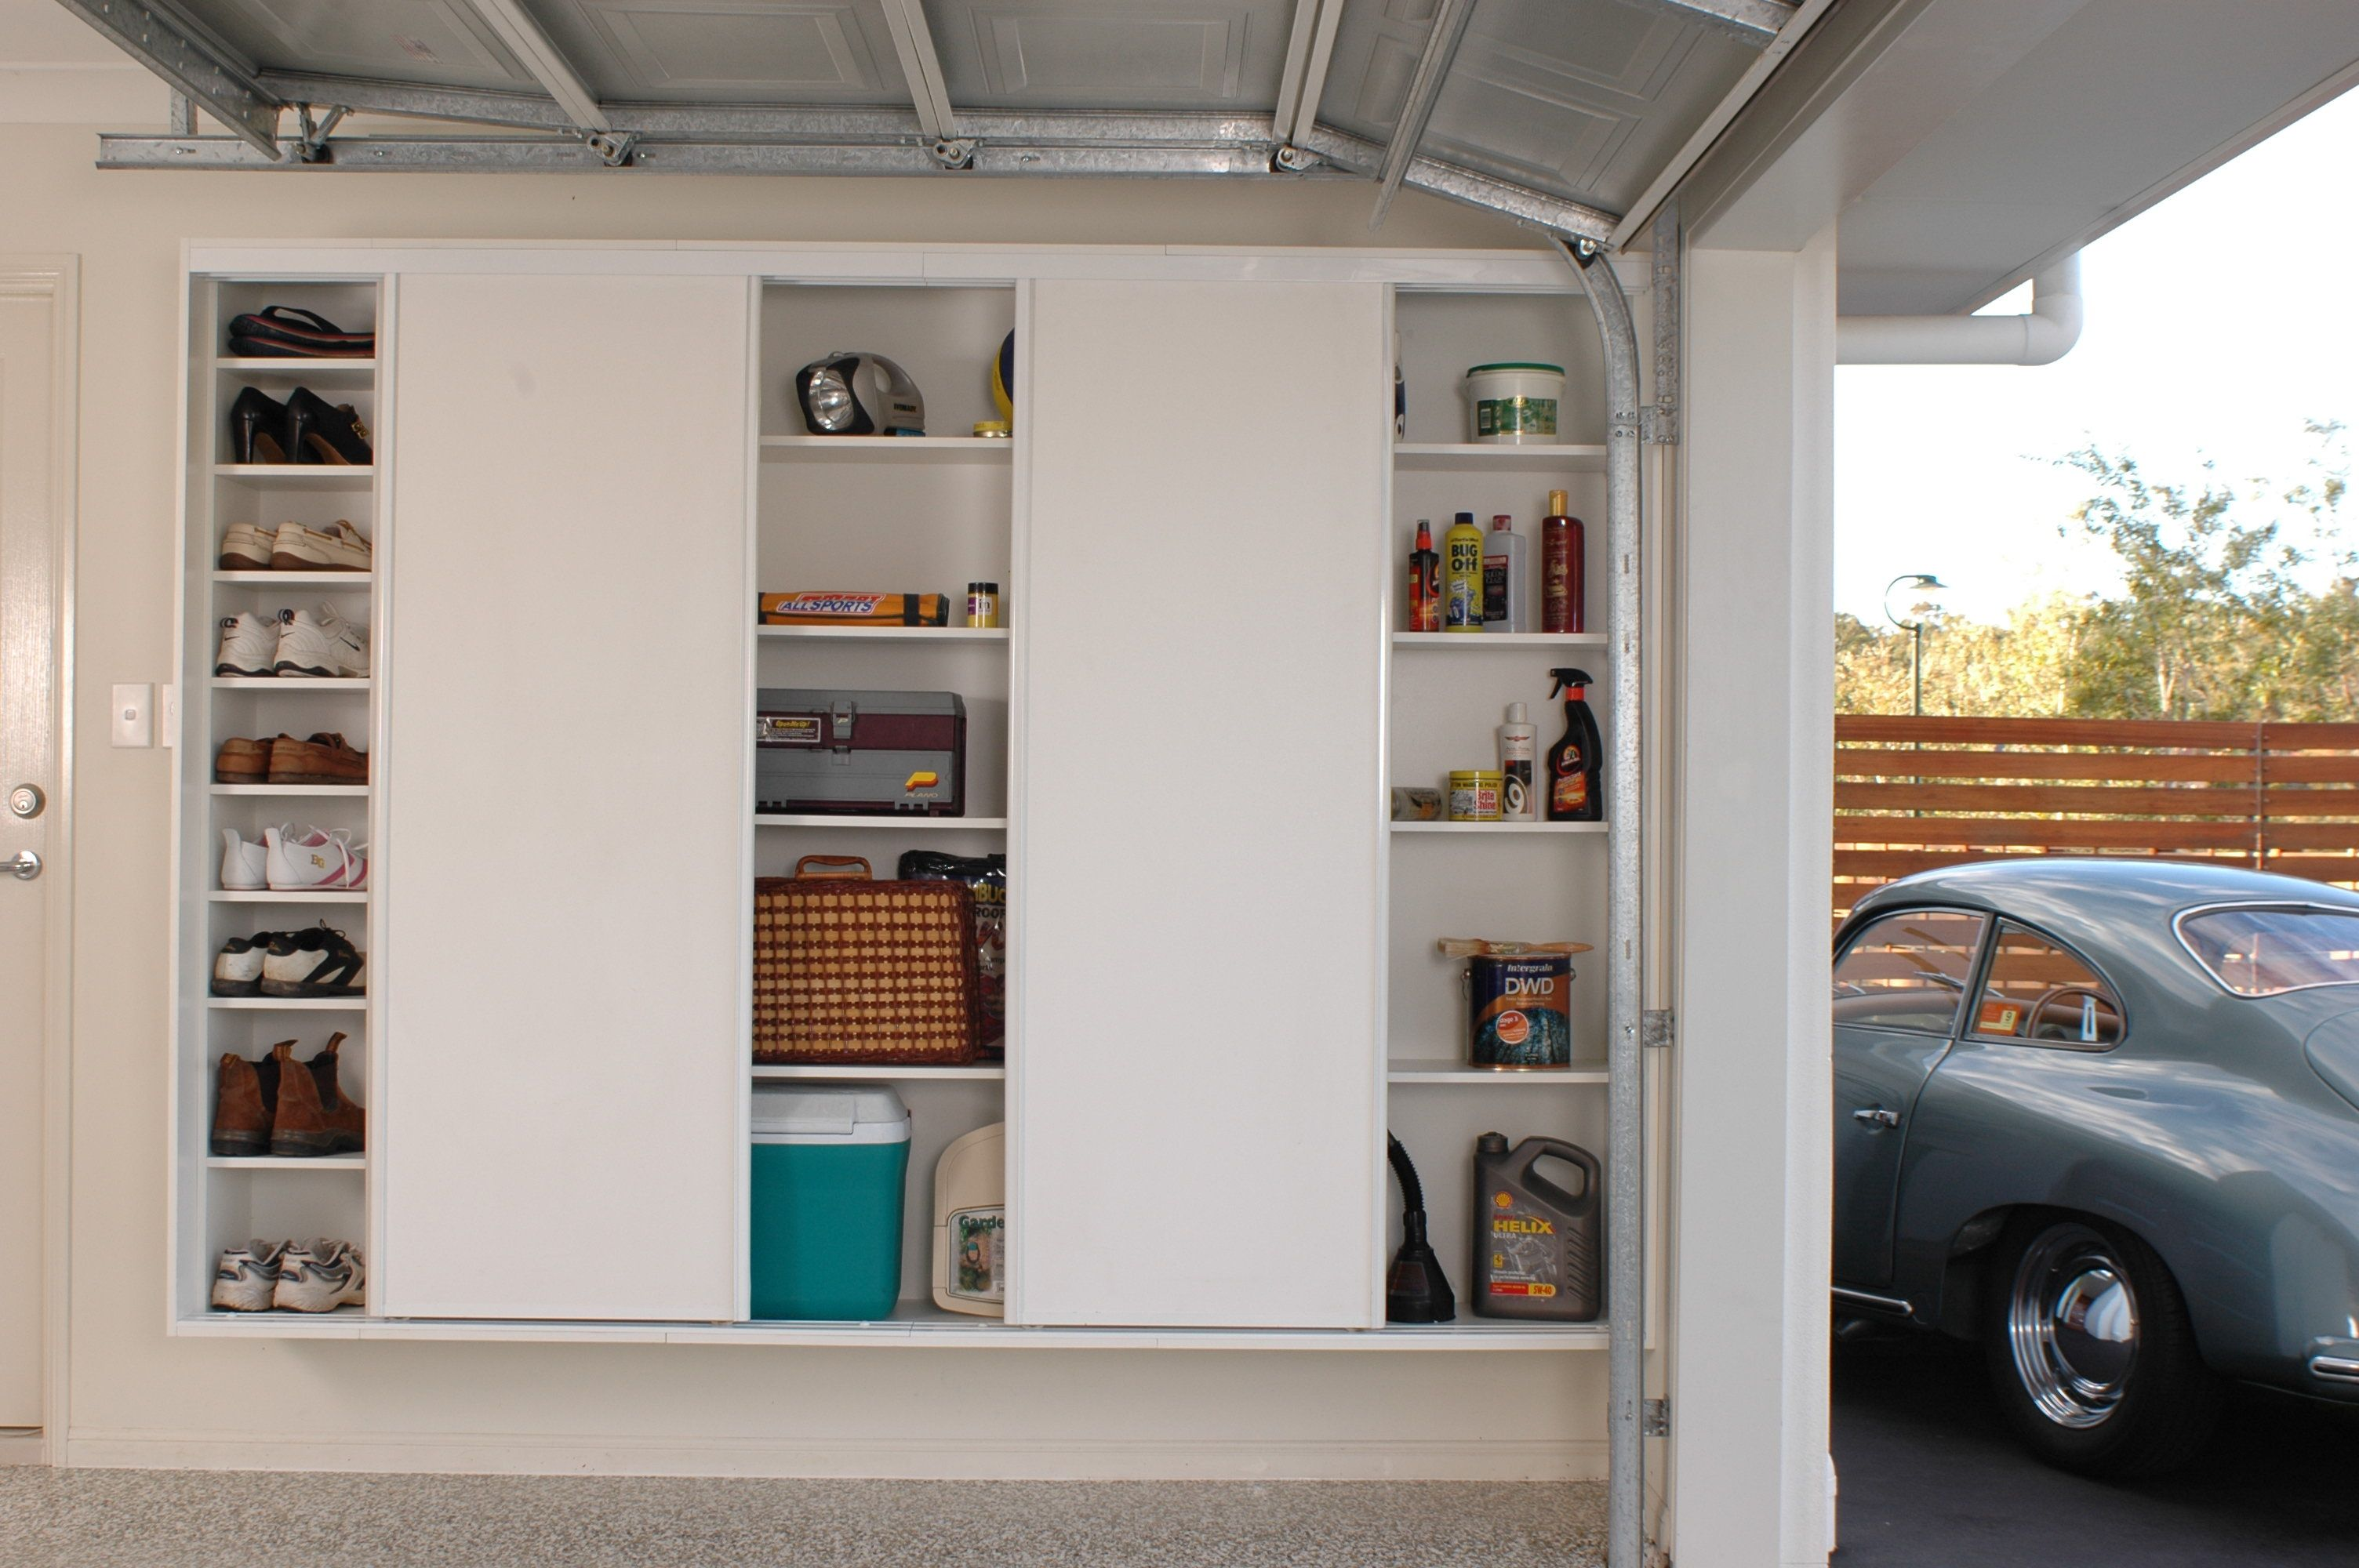 Cupboard Sliding Doors Slimline Built In Cupboards With Sliding Doors For Ease Of